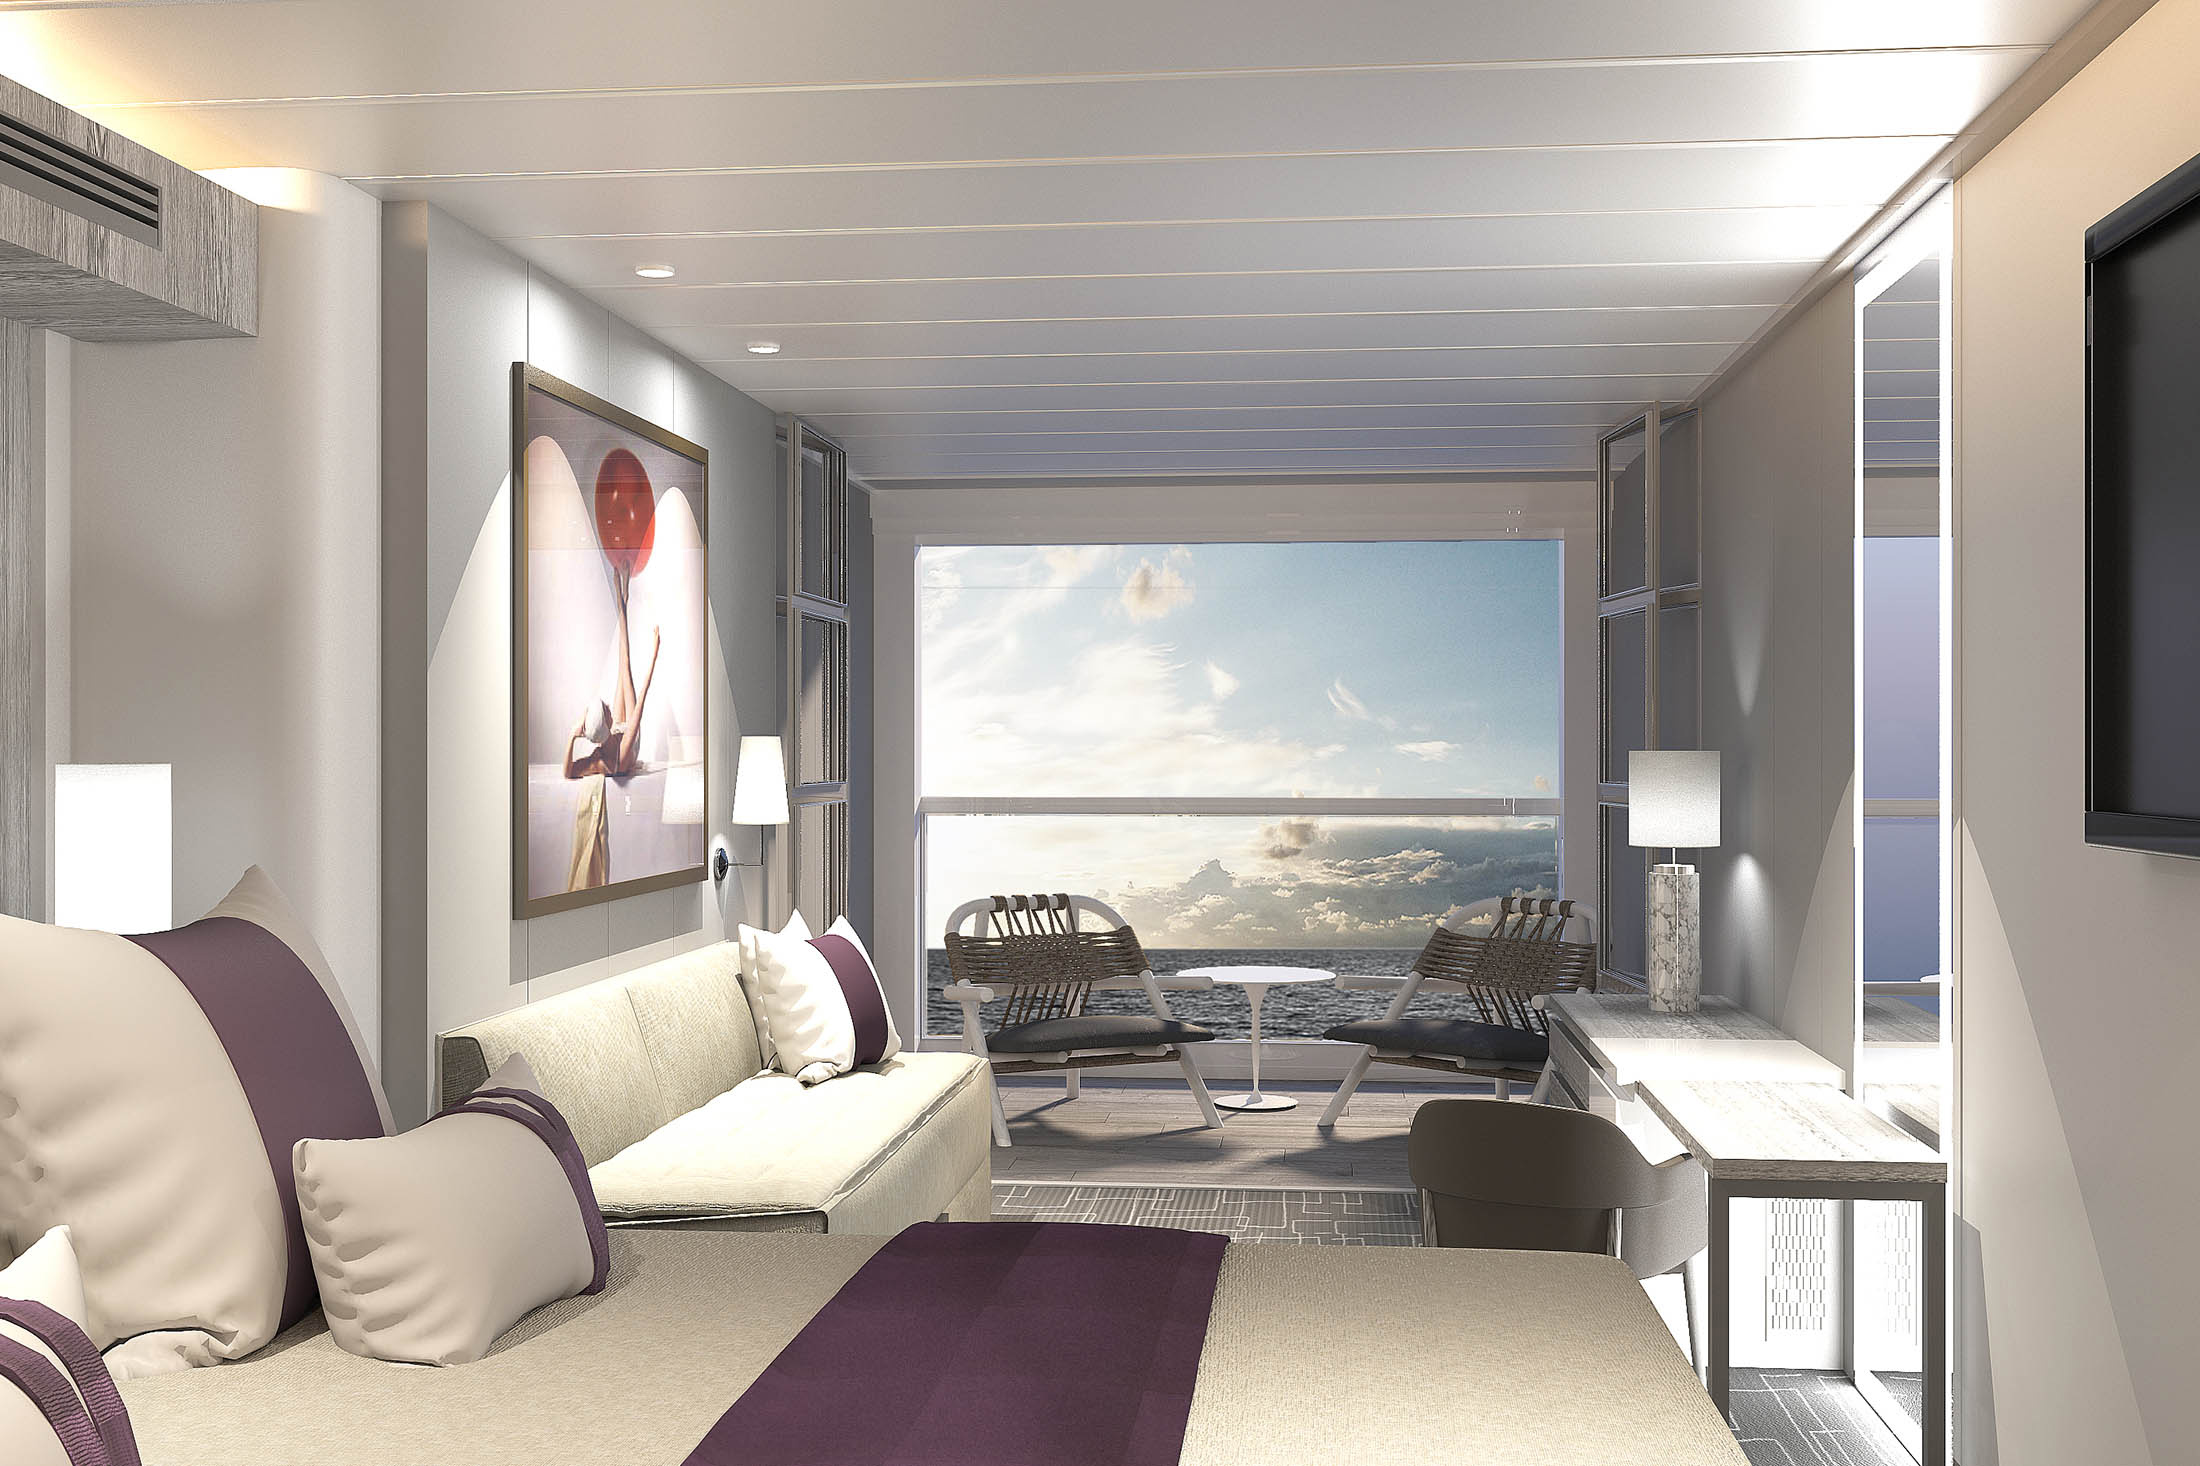 Msc Seaside Balcony Room Pictures Ship On Msc Seaside